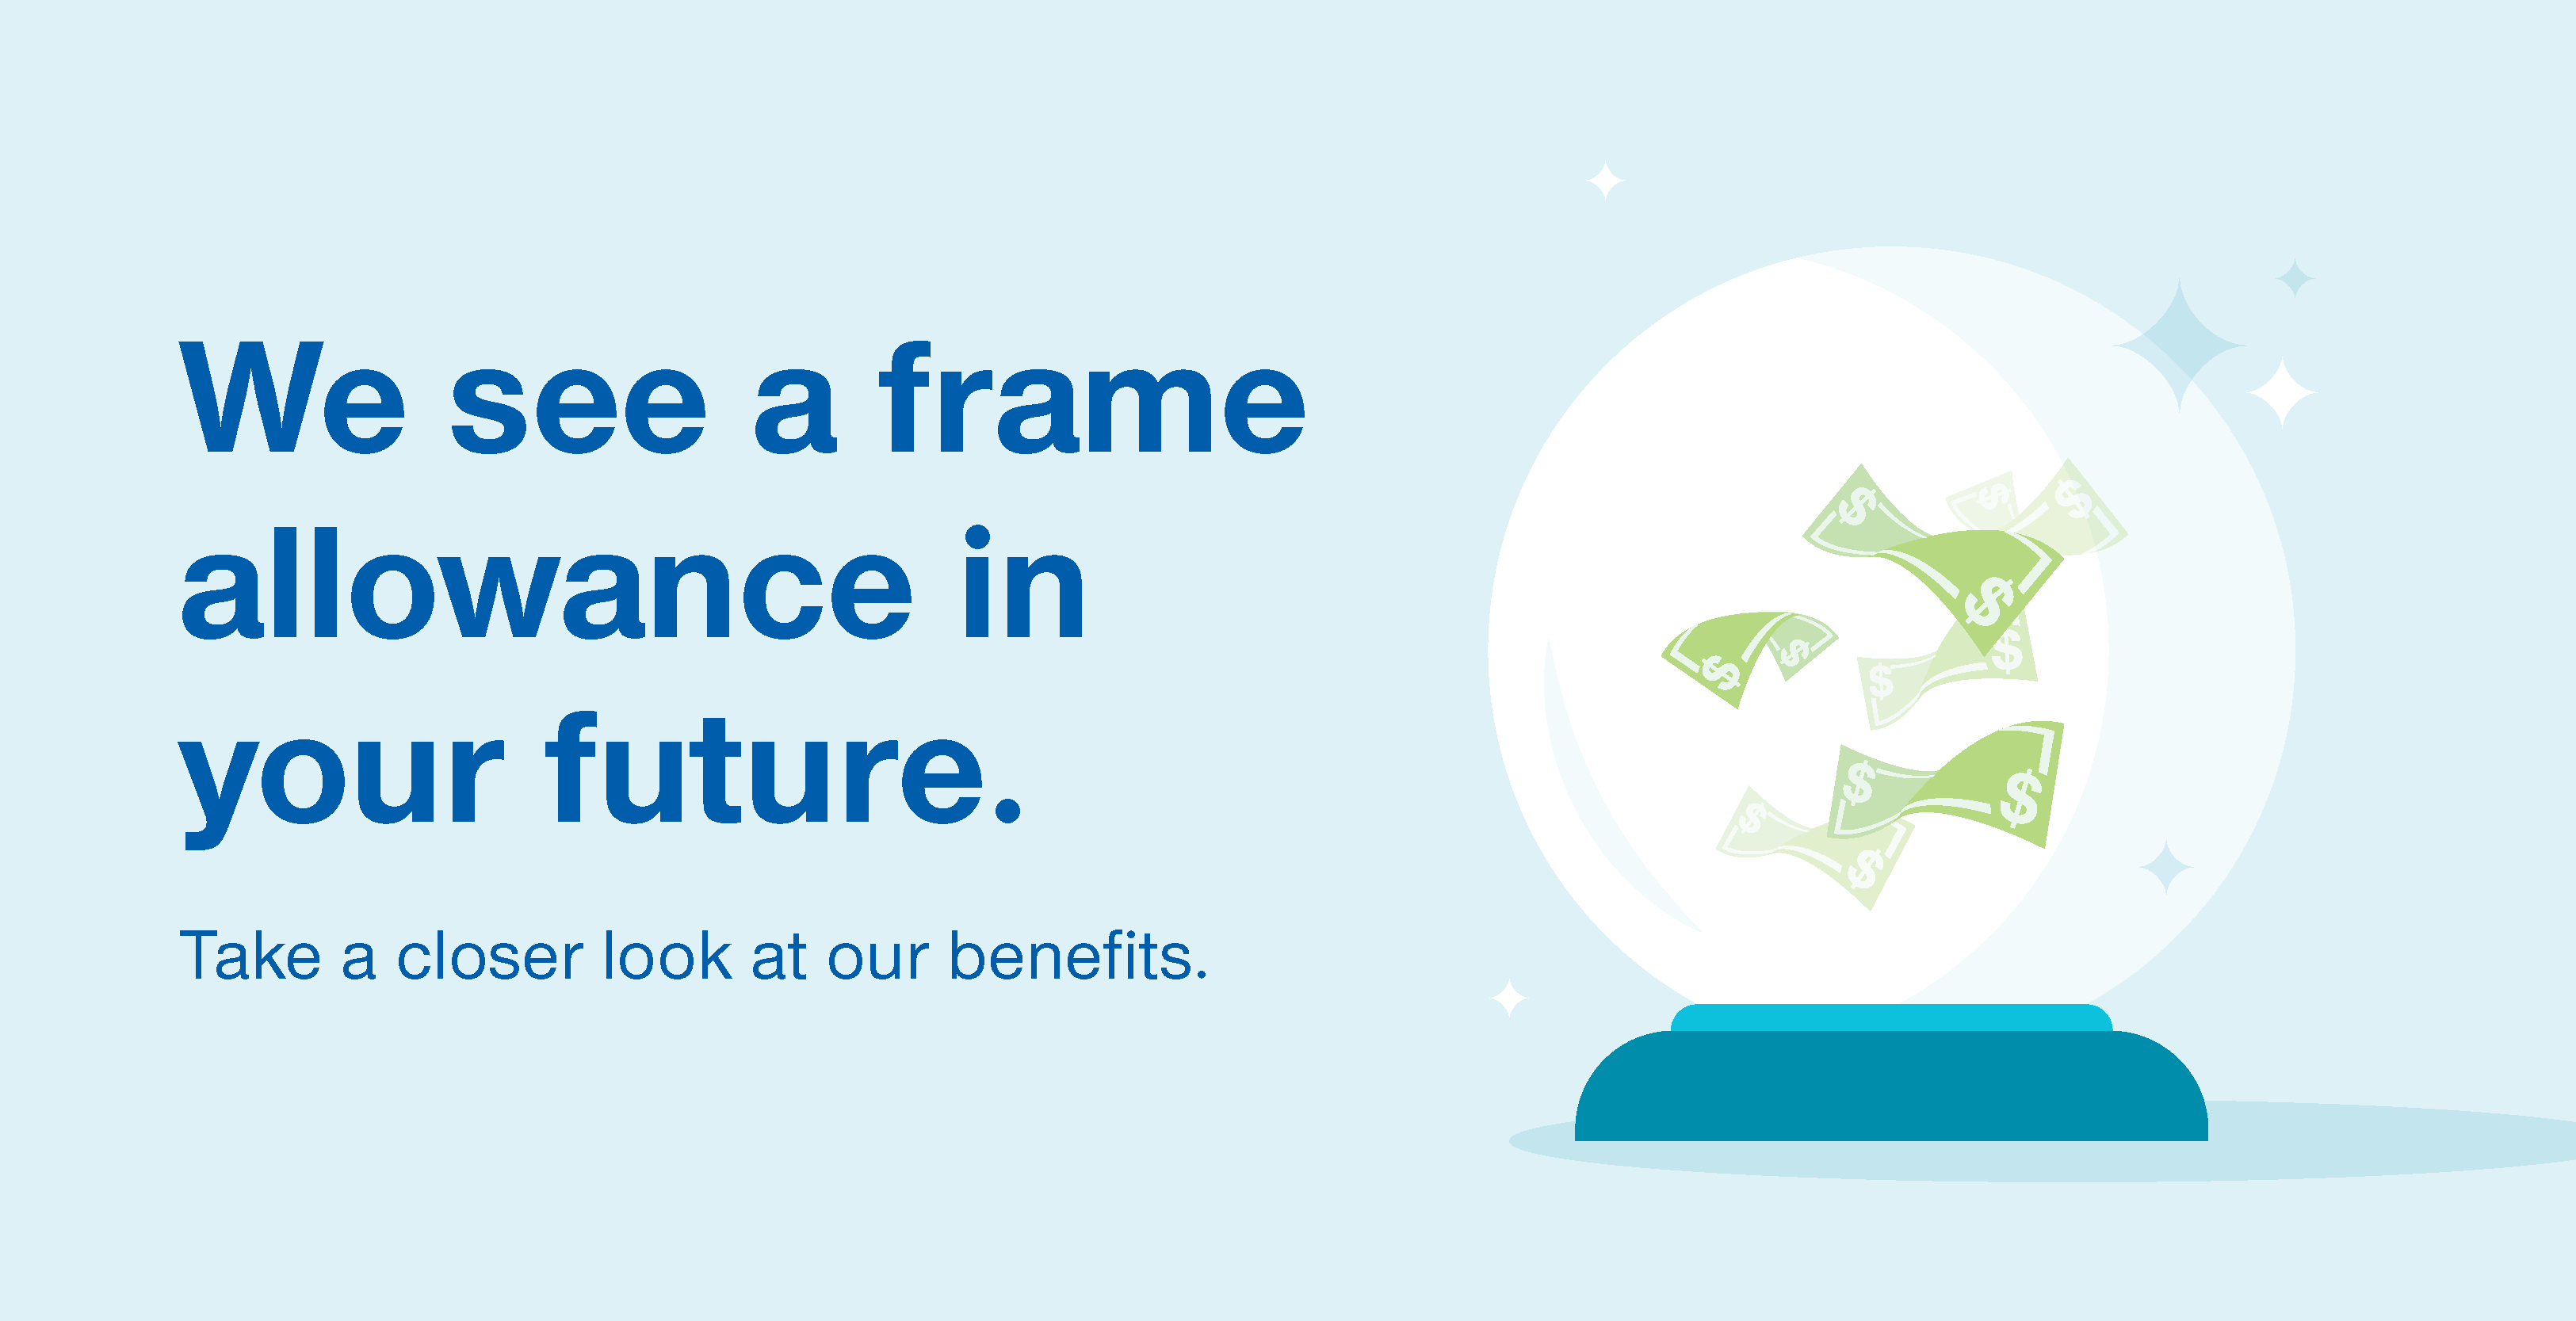 We see a frame allowance in your future